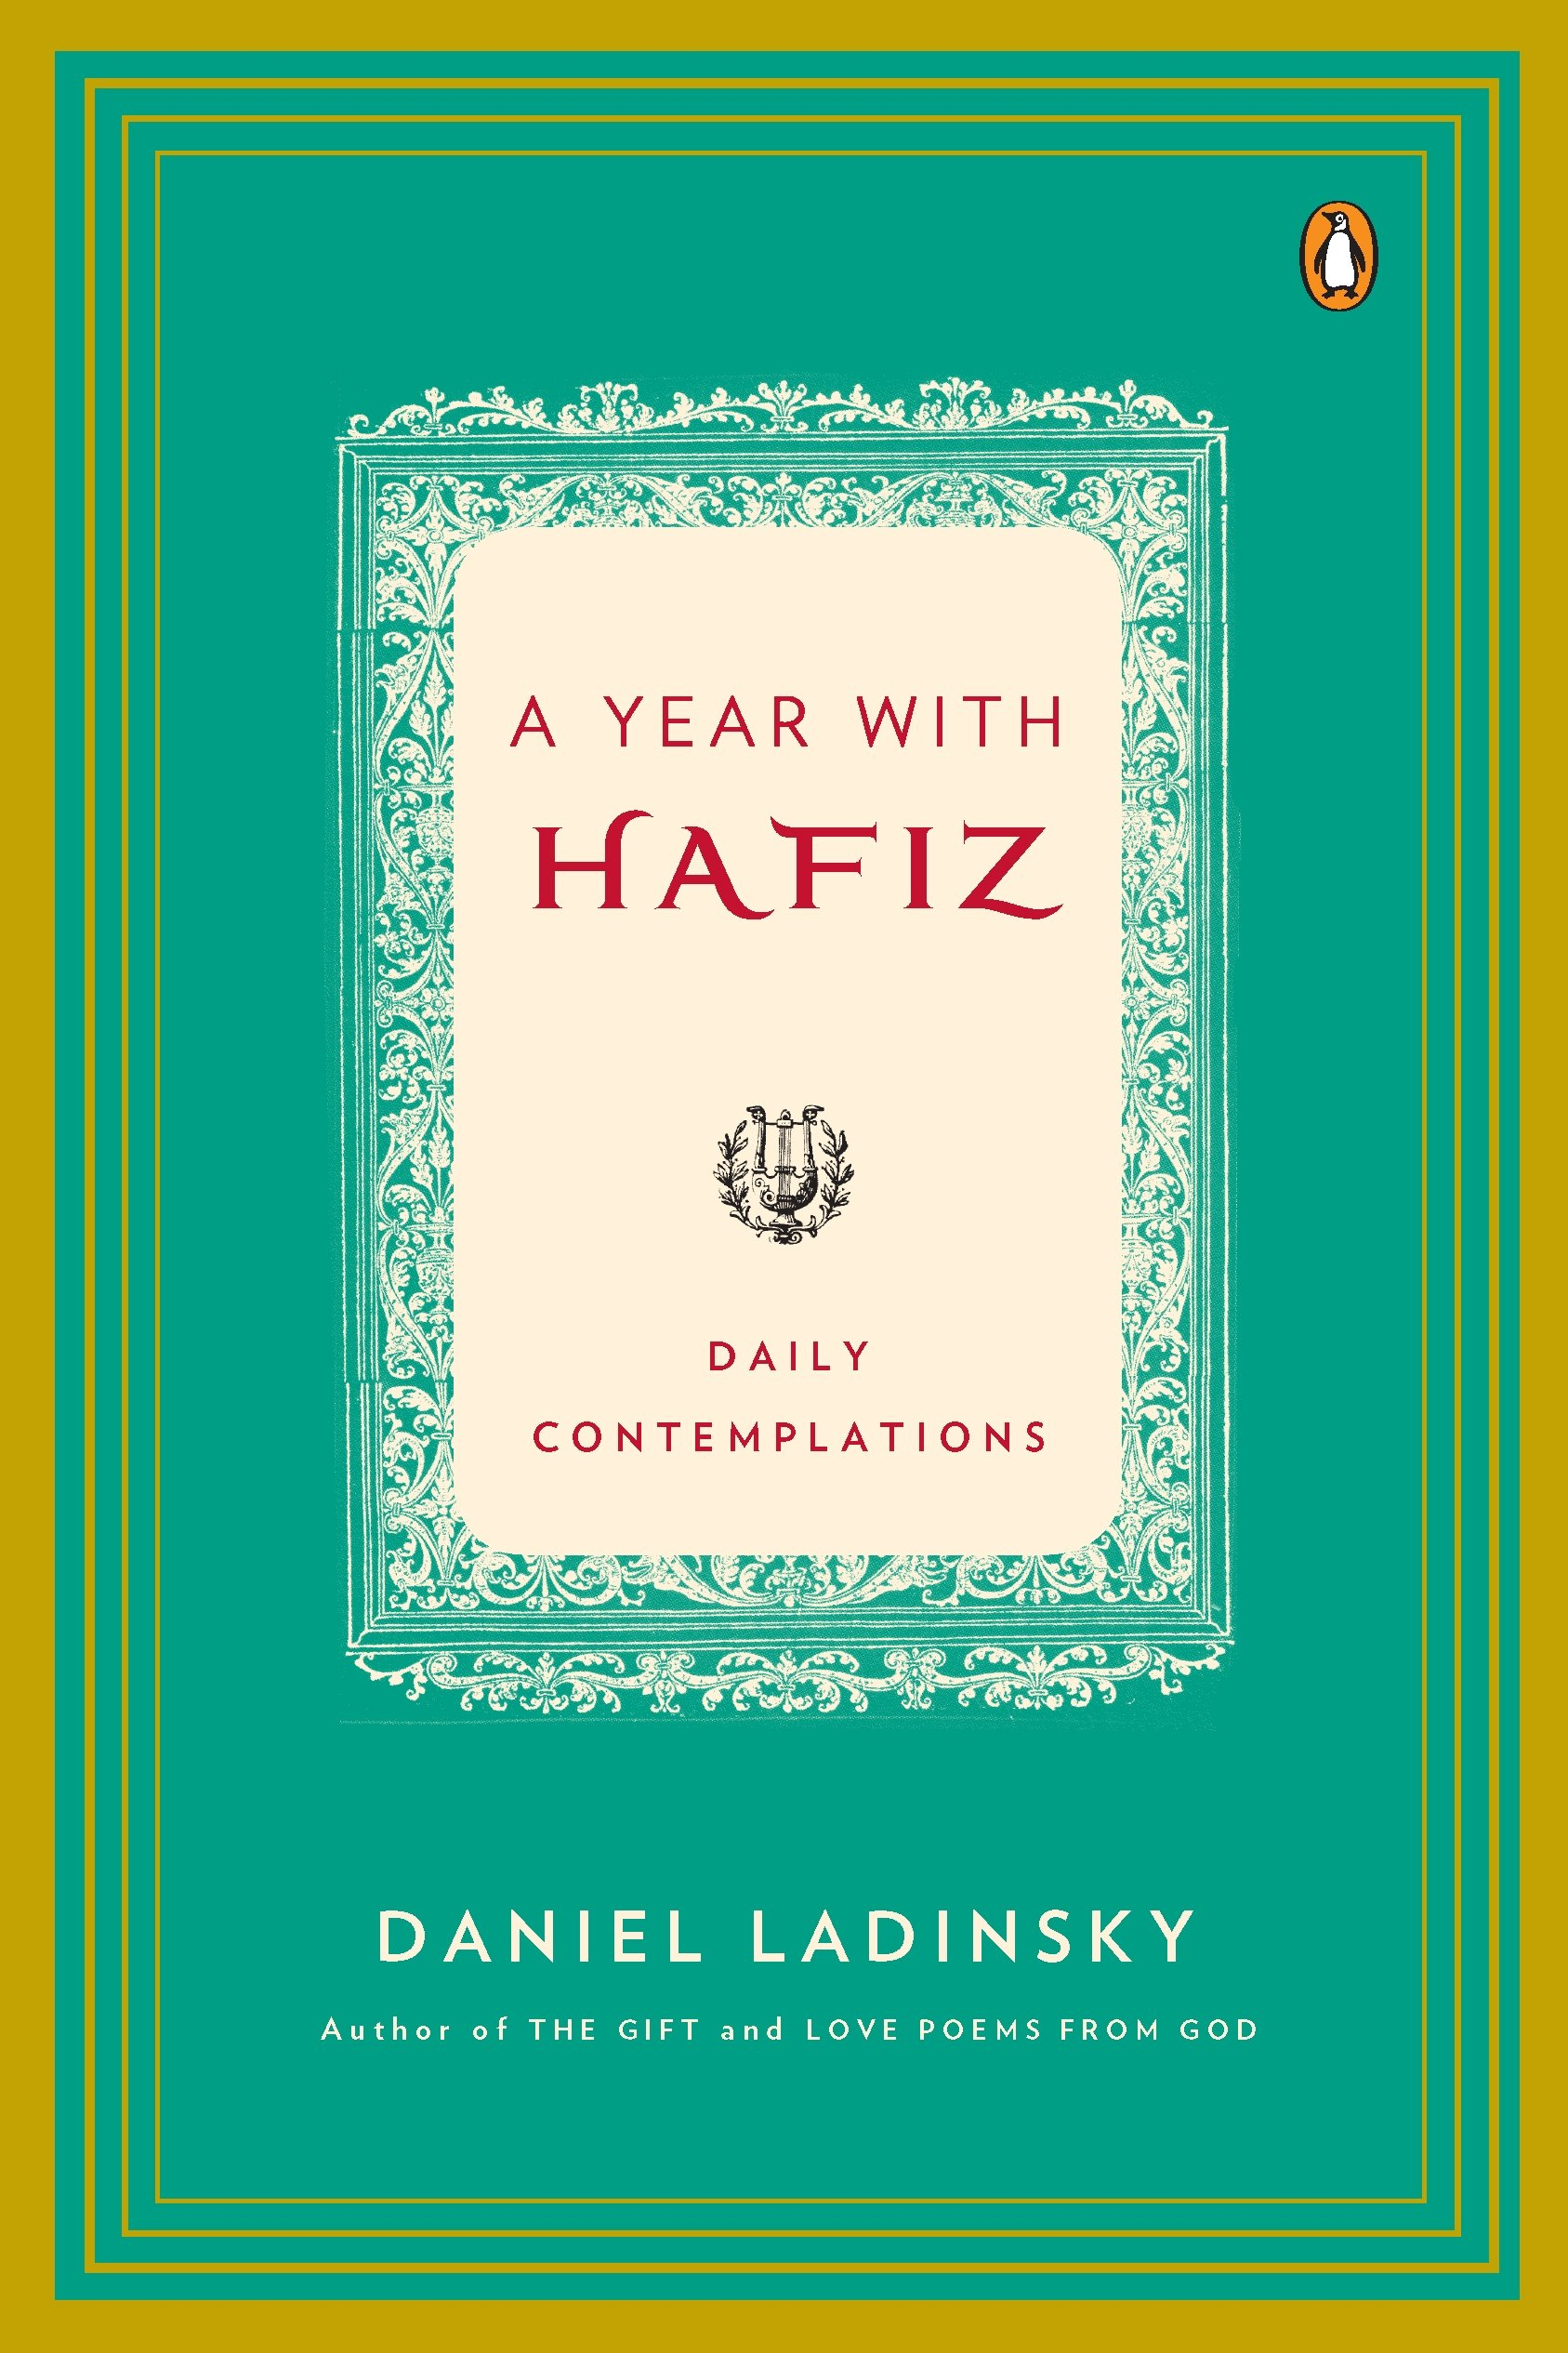 Amazon.com: A Year with Hafiz: Daily Contemplations (9780143117544 ...